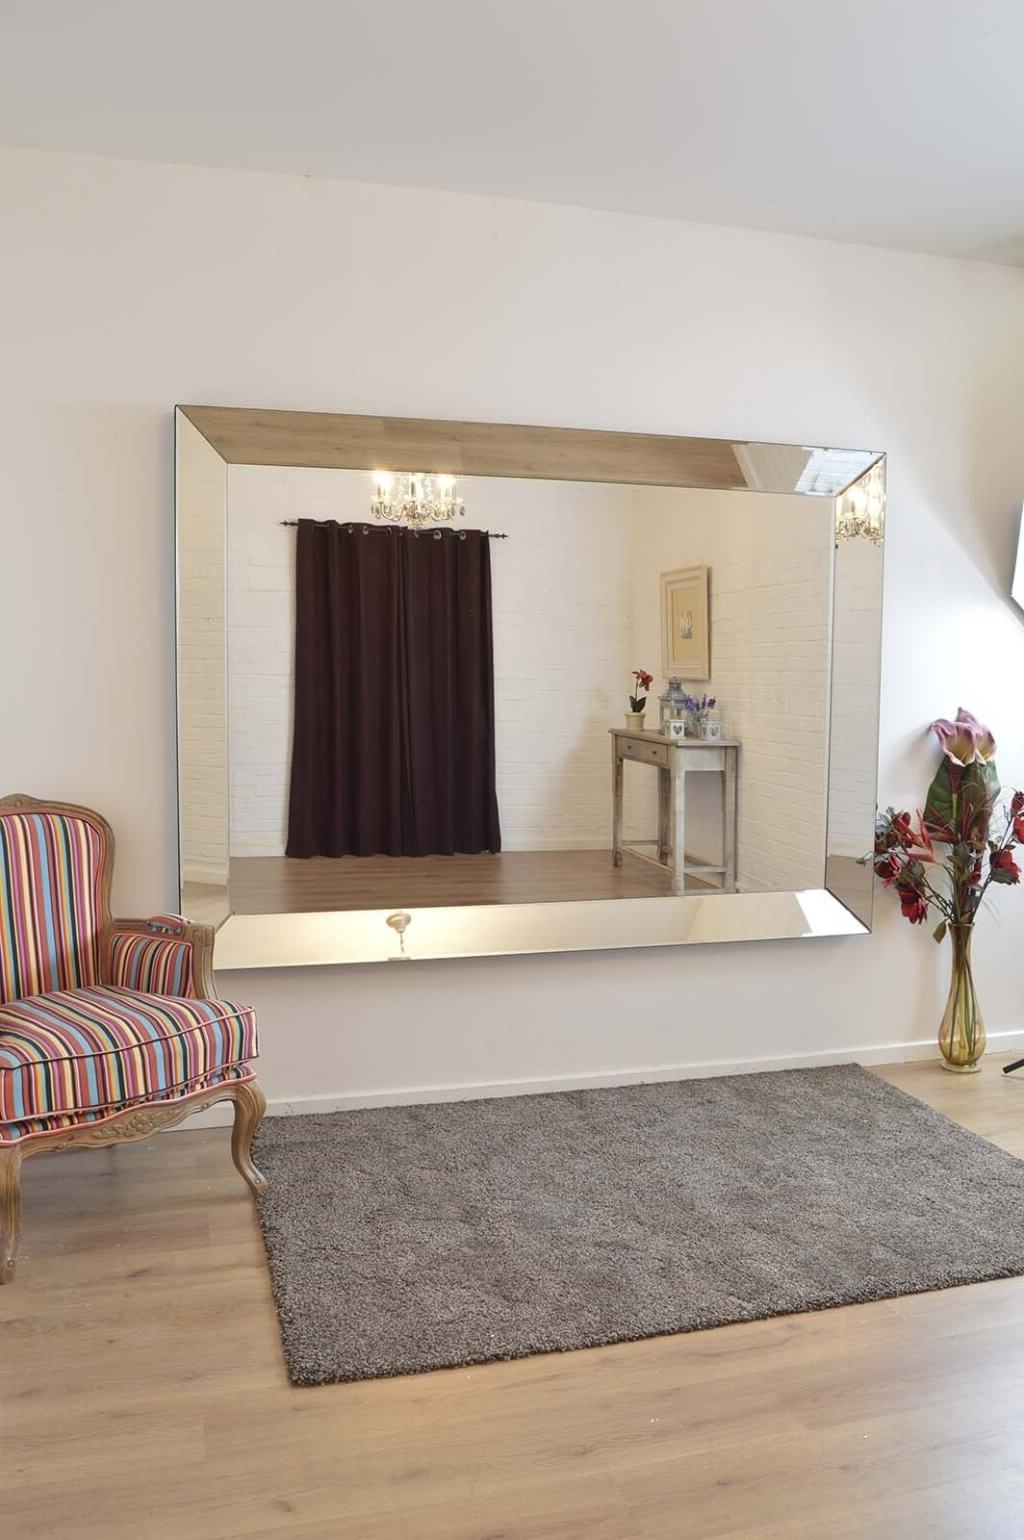 Living Full Length Frameless Wall Mirror • Bathroom Mirrors And Wall Regarding Most Recently Released Full Length Frameless Wall Mirrors (View 5 of 20)